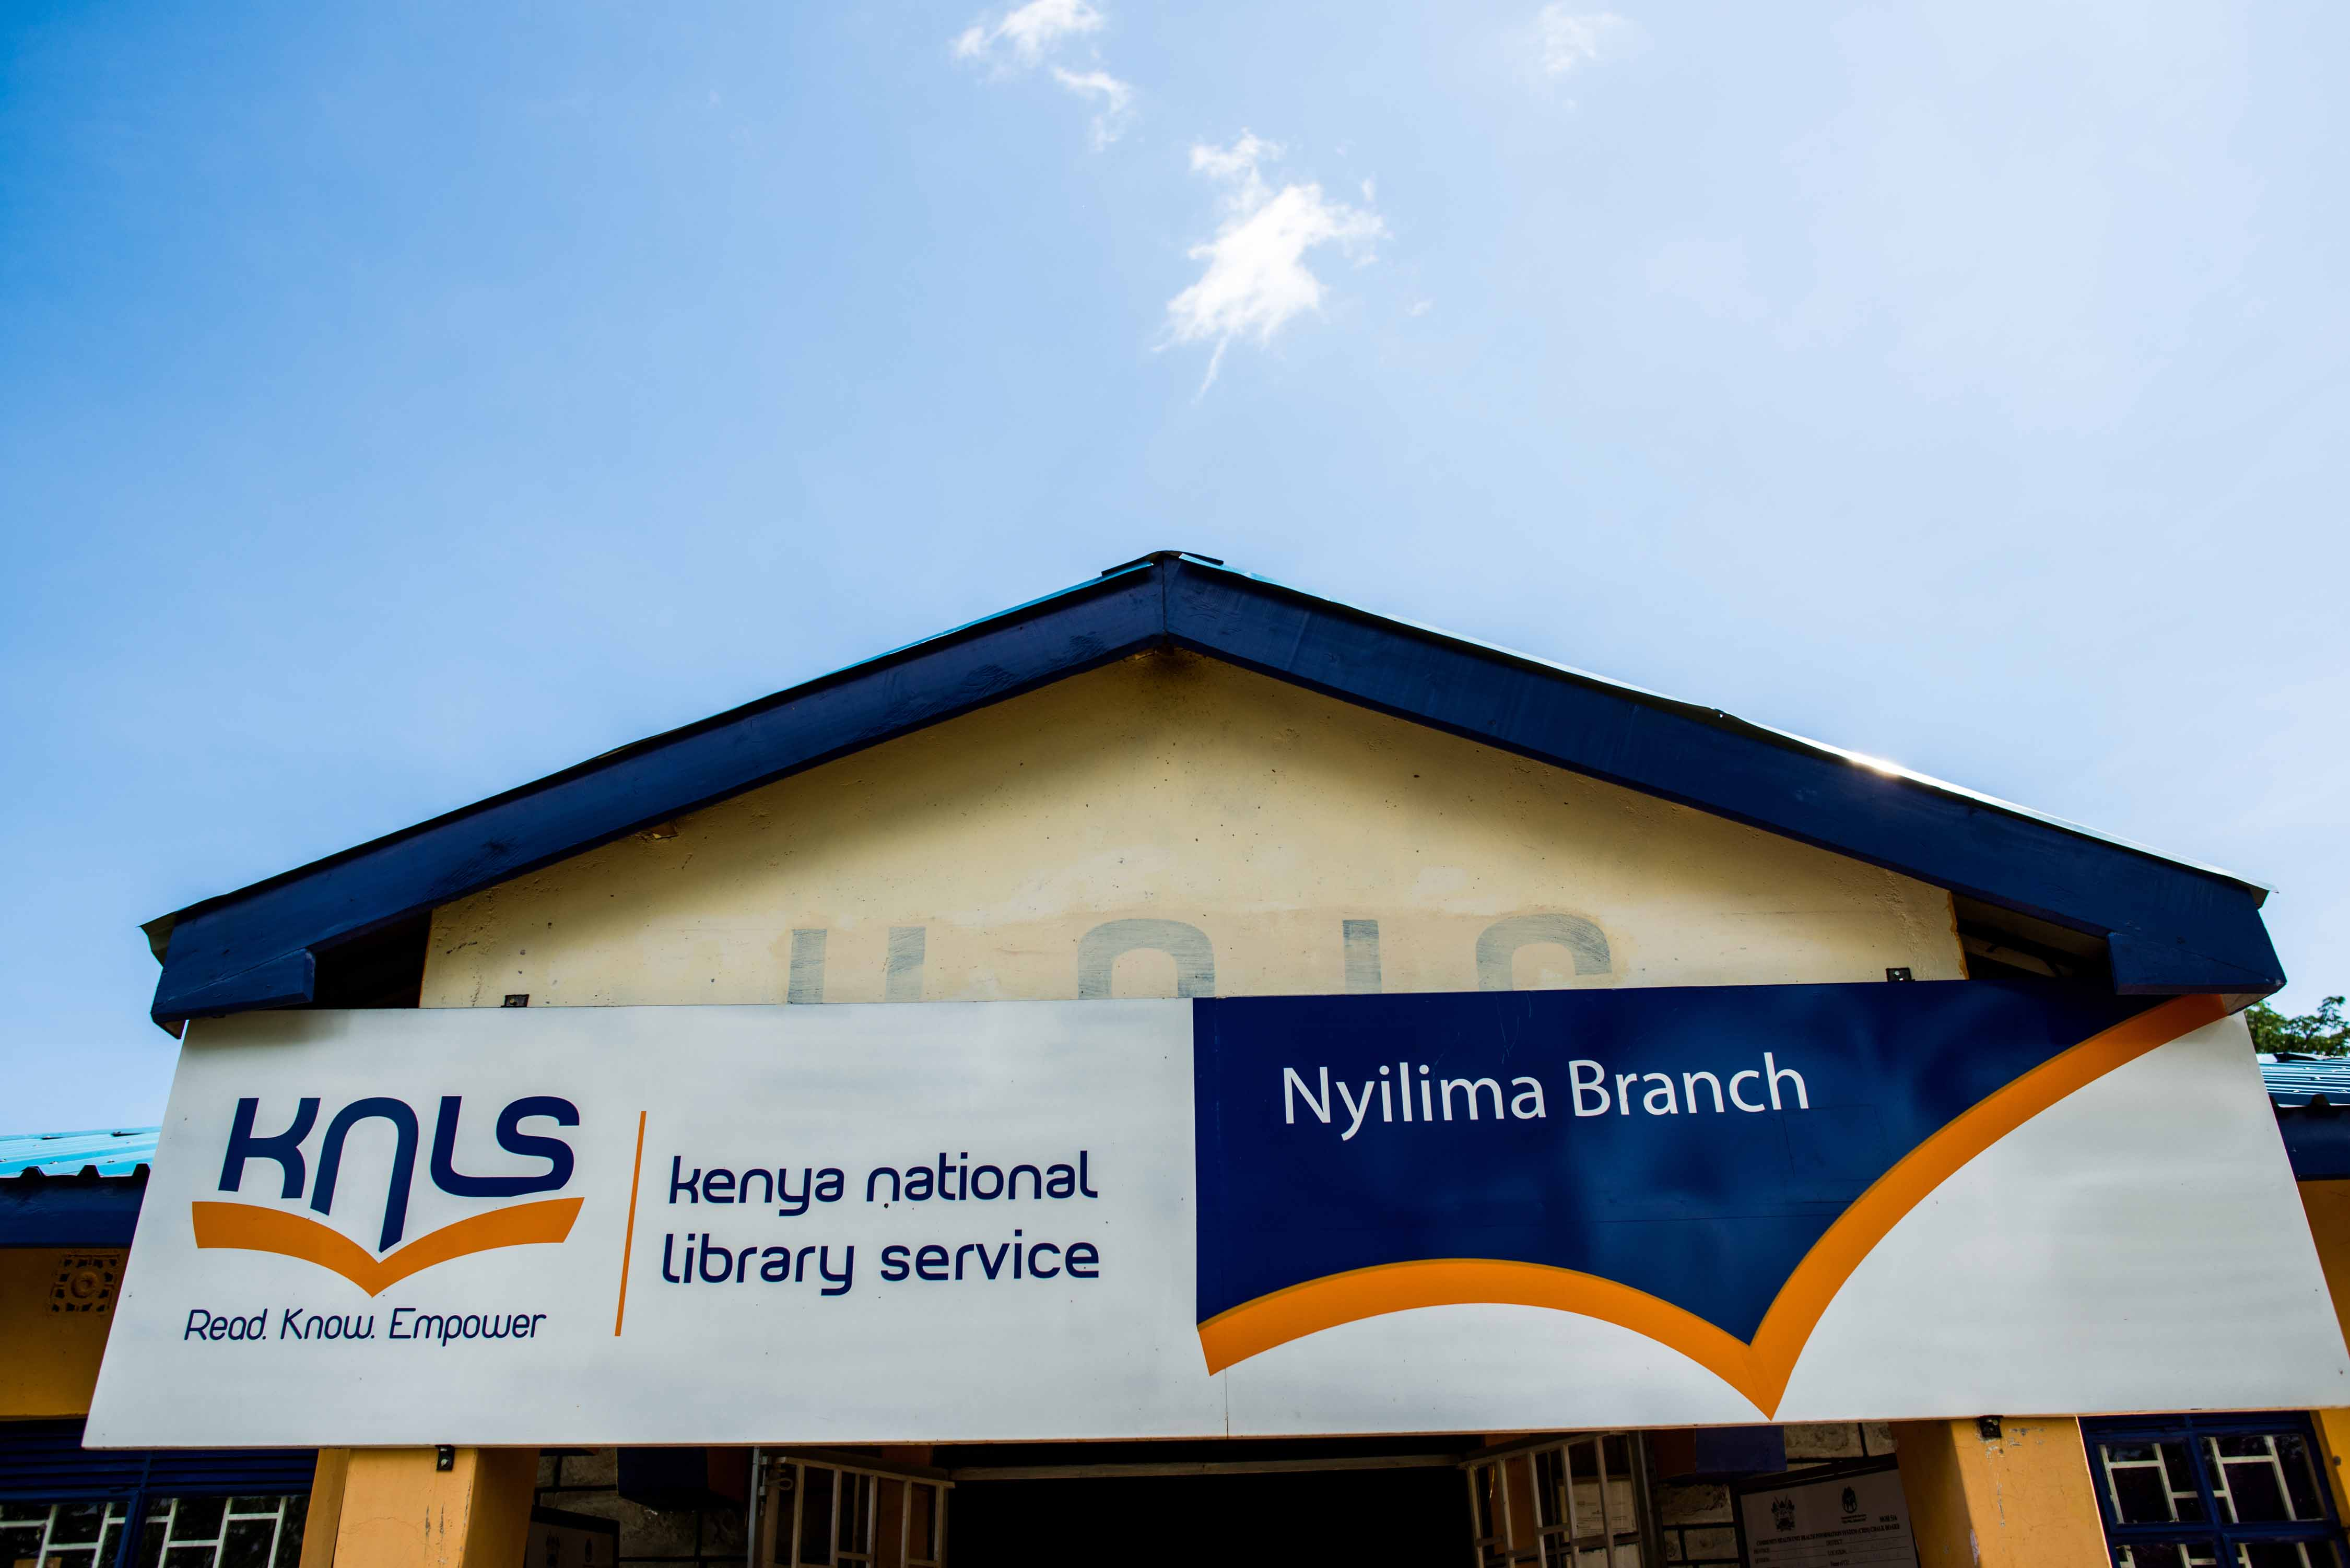 Kenya National Library Service